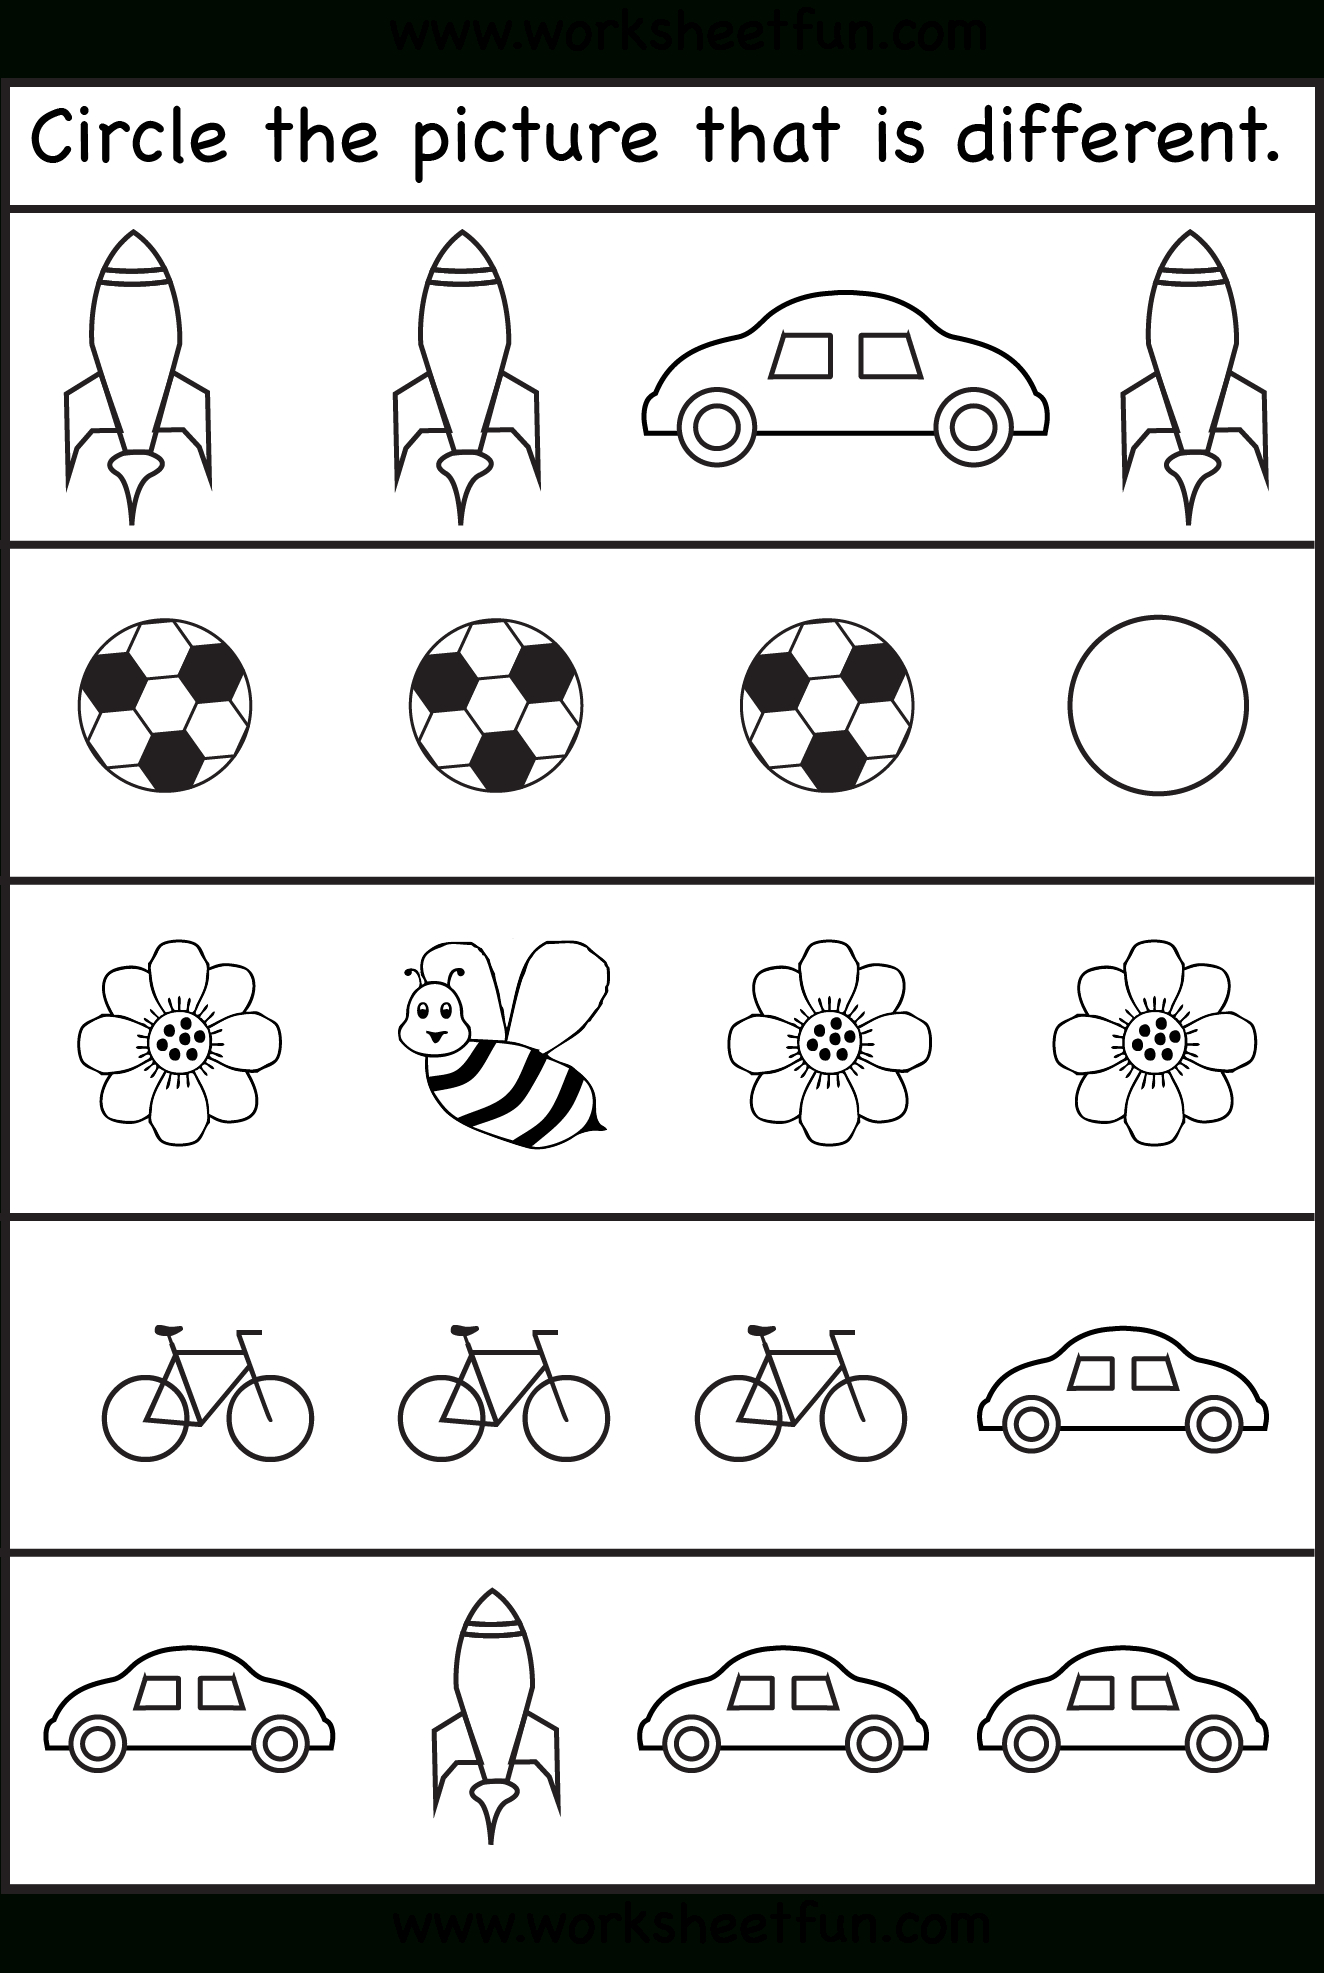 Same Or Different Worksheets For Toddler | Kids Worksheets Printable - Free Printable Worksheets For 3 Year Olds